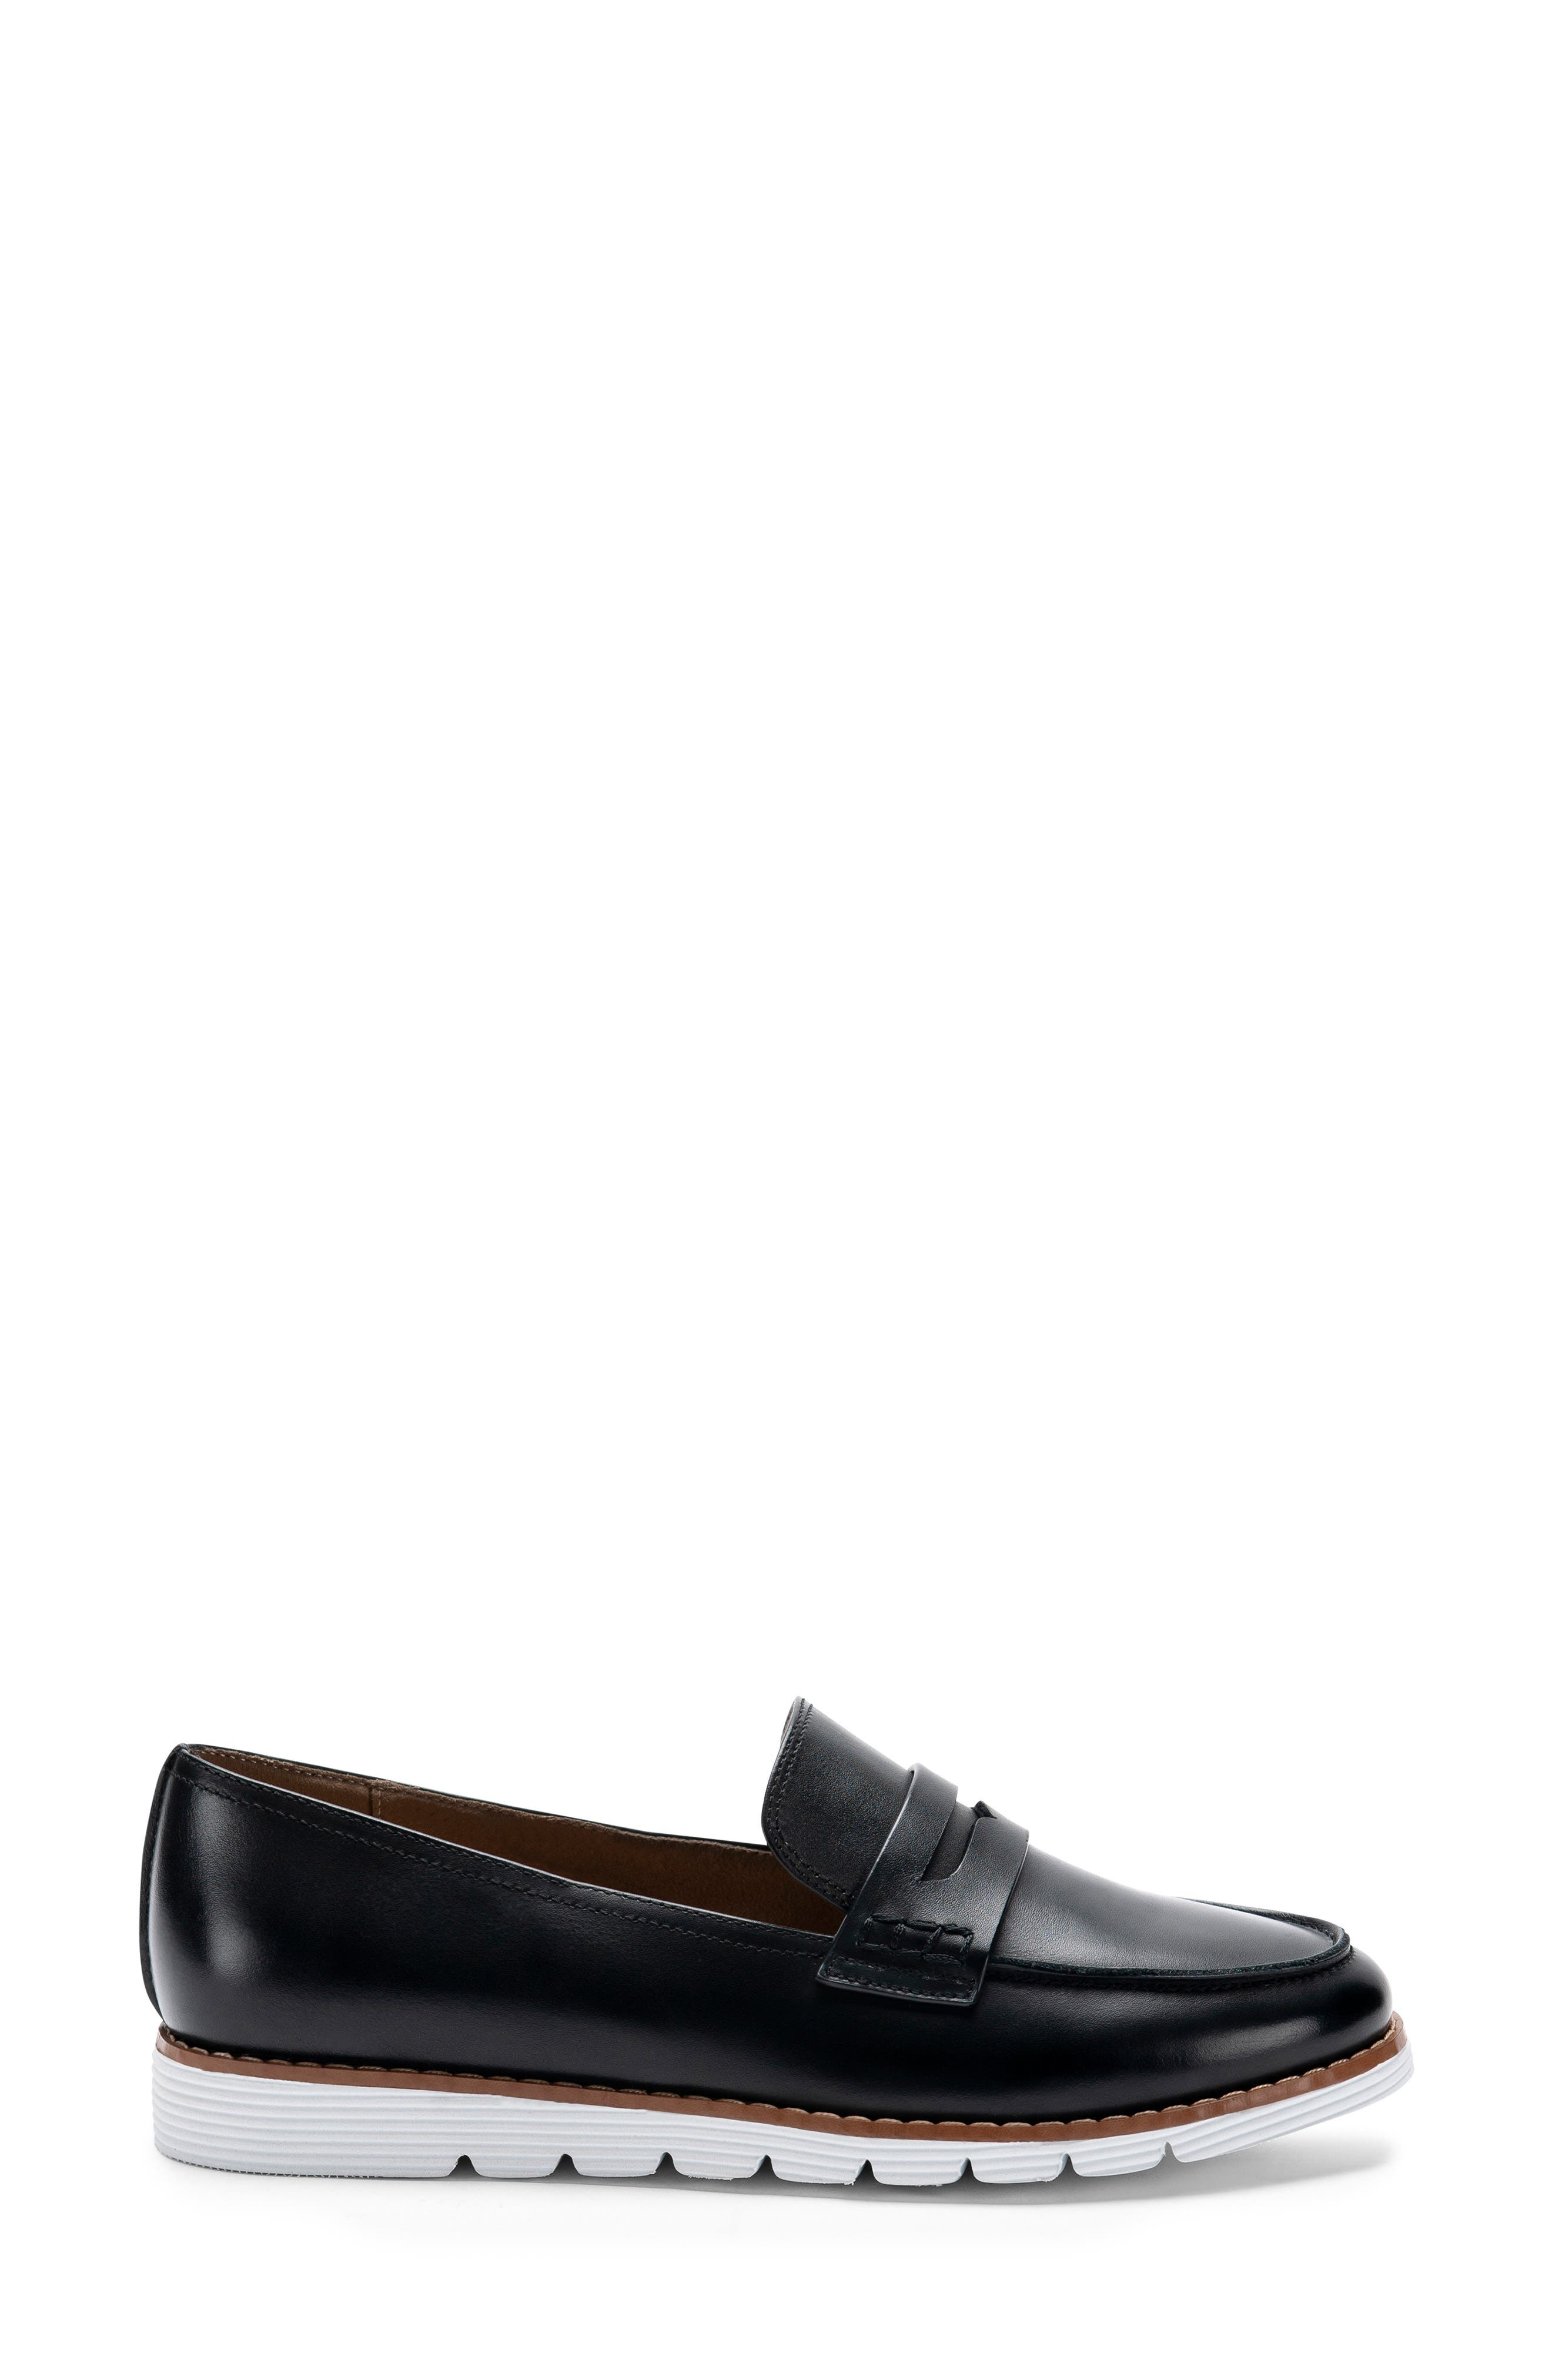 BLONDO, Waterproof Penny Loafer, Alternate thumbnail 3, color, BLACK LEATHER